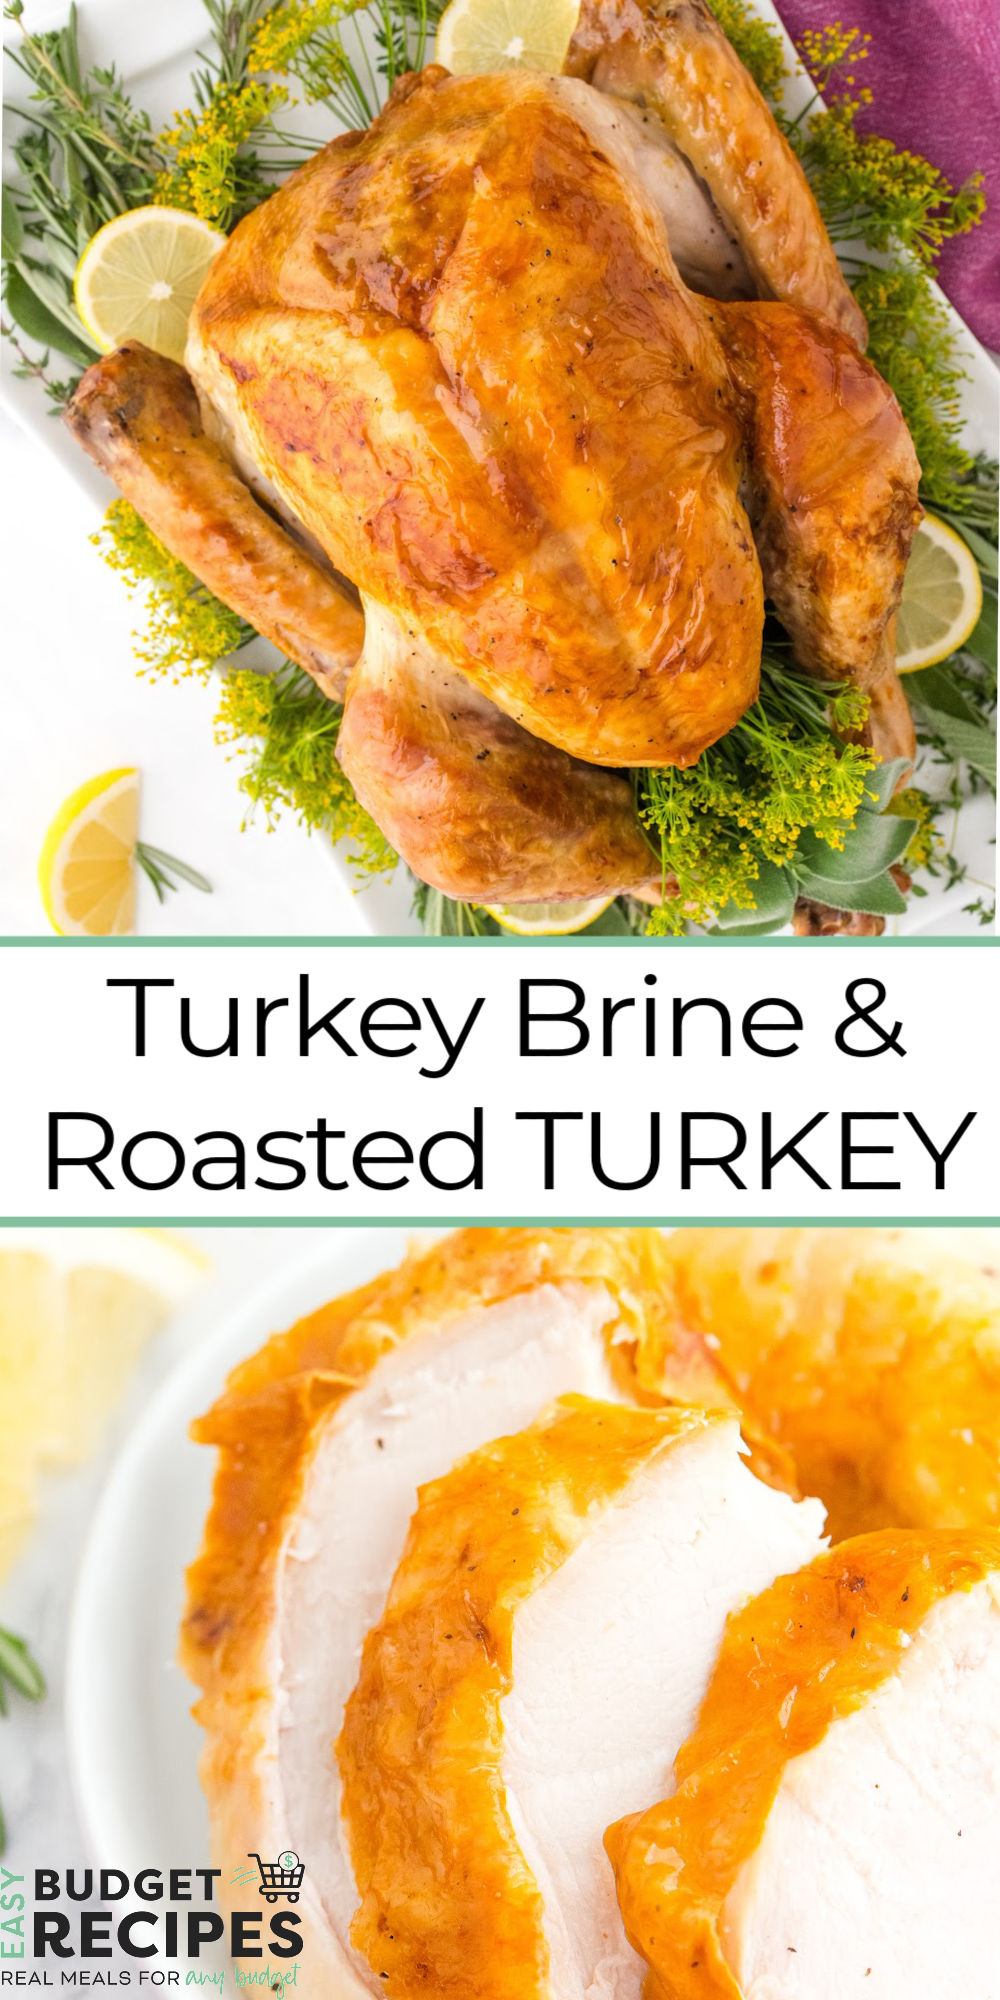 This Easy Turkey Brine and Roast Turkey recipe is succulent, juicy, and cooked to golden-brown perfection. This turkey has so much flavor and it will be the star of your Thanksgiving table. via @easybudgetrecipes